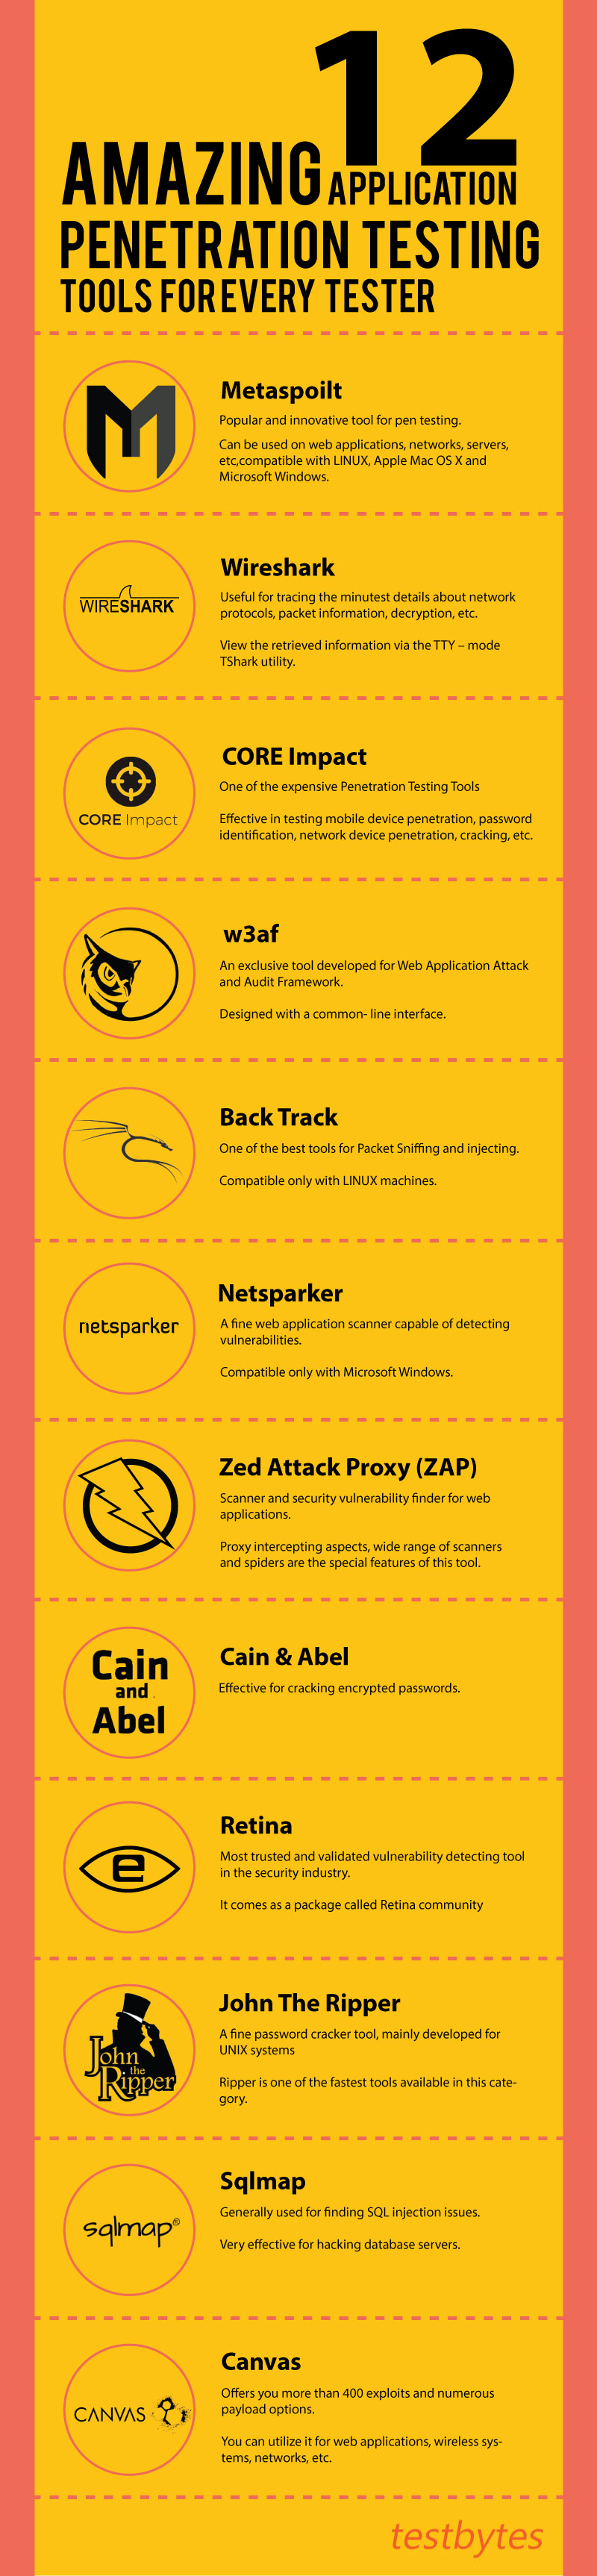 12 Amazing Application Penetration Testing Tools For Every Tester [Infographic]